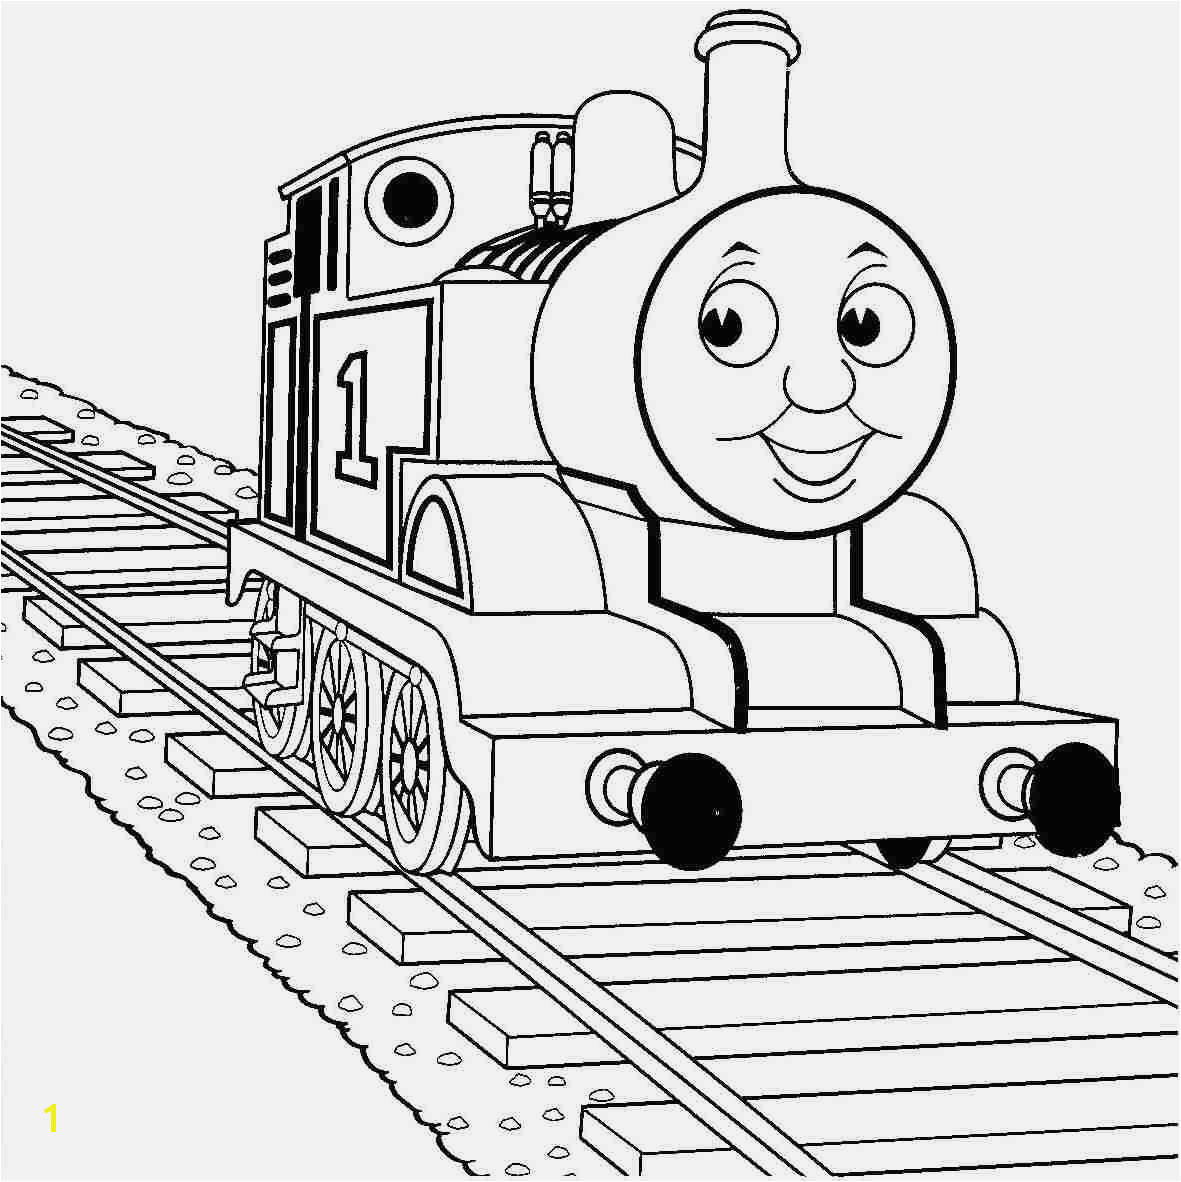 Free Thomas the Train Coloring Pages Thomas the Train Coloring Pages Best Easy 41 Coloring Pages Thomas